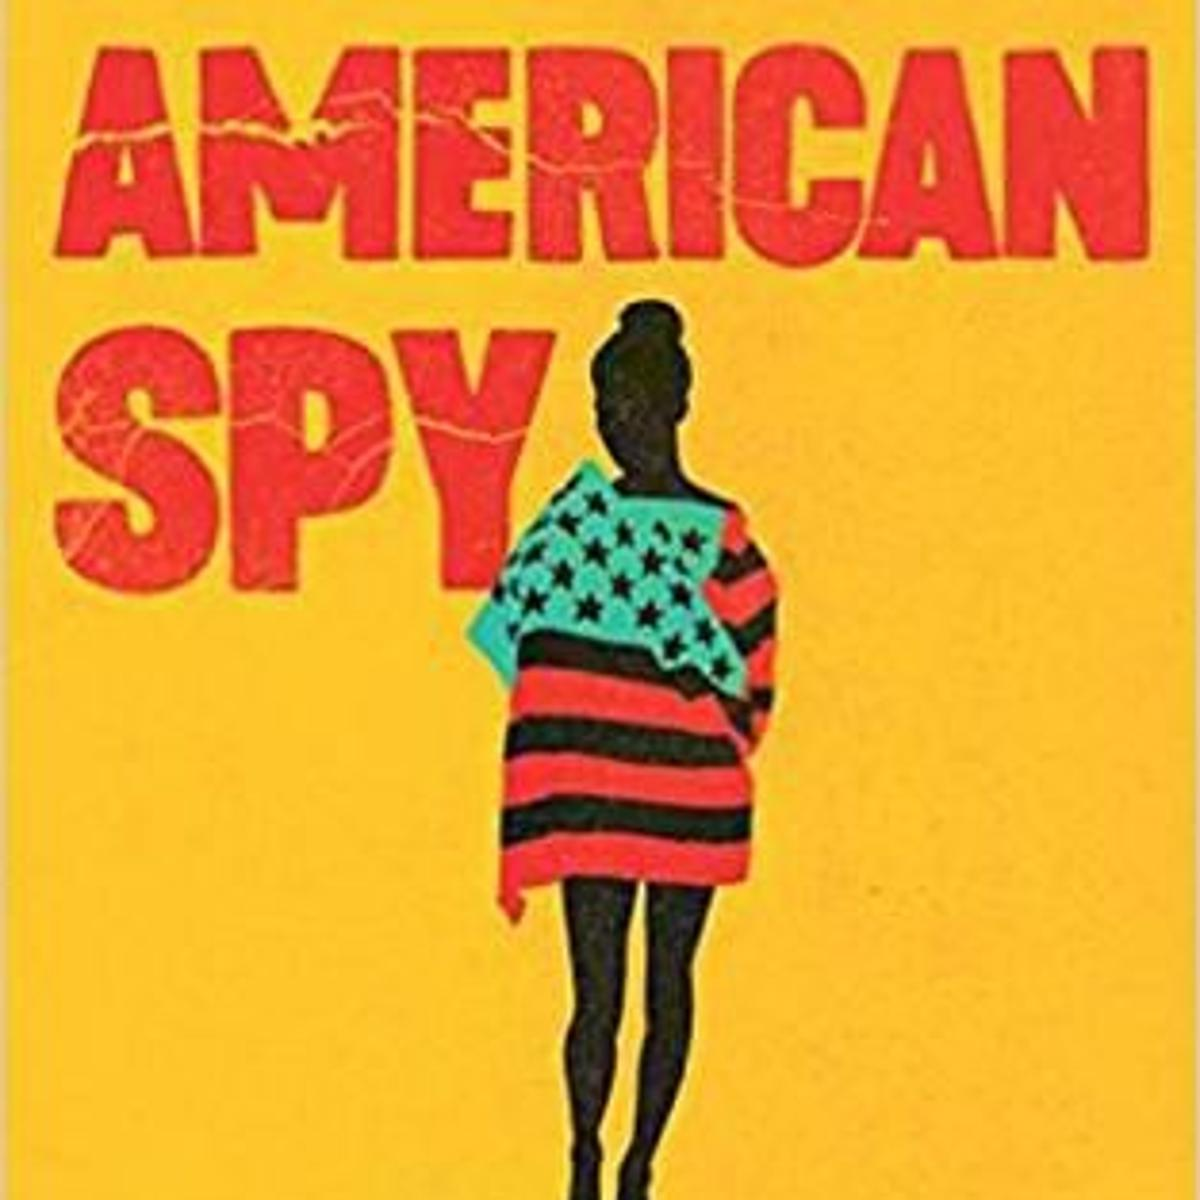 American Spy' breaks down barriers and is a terrific read